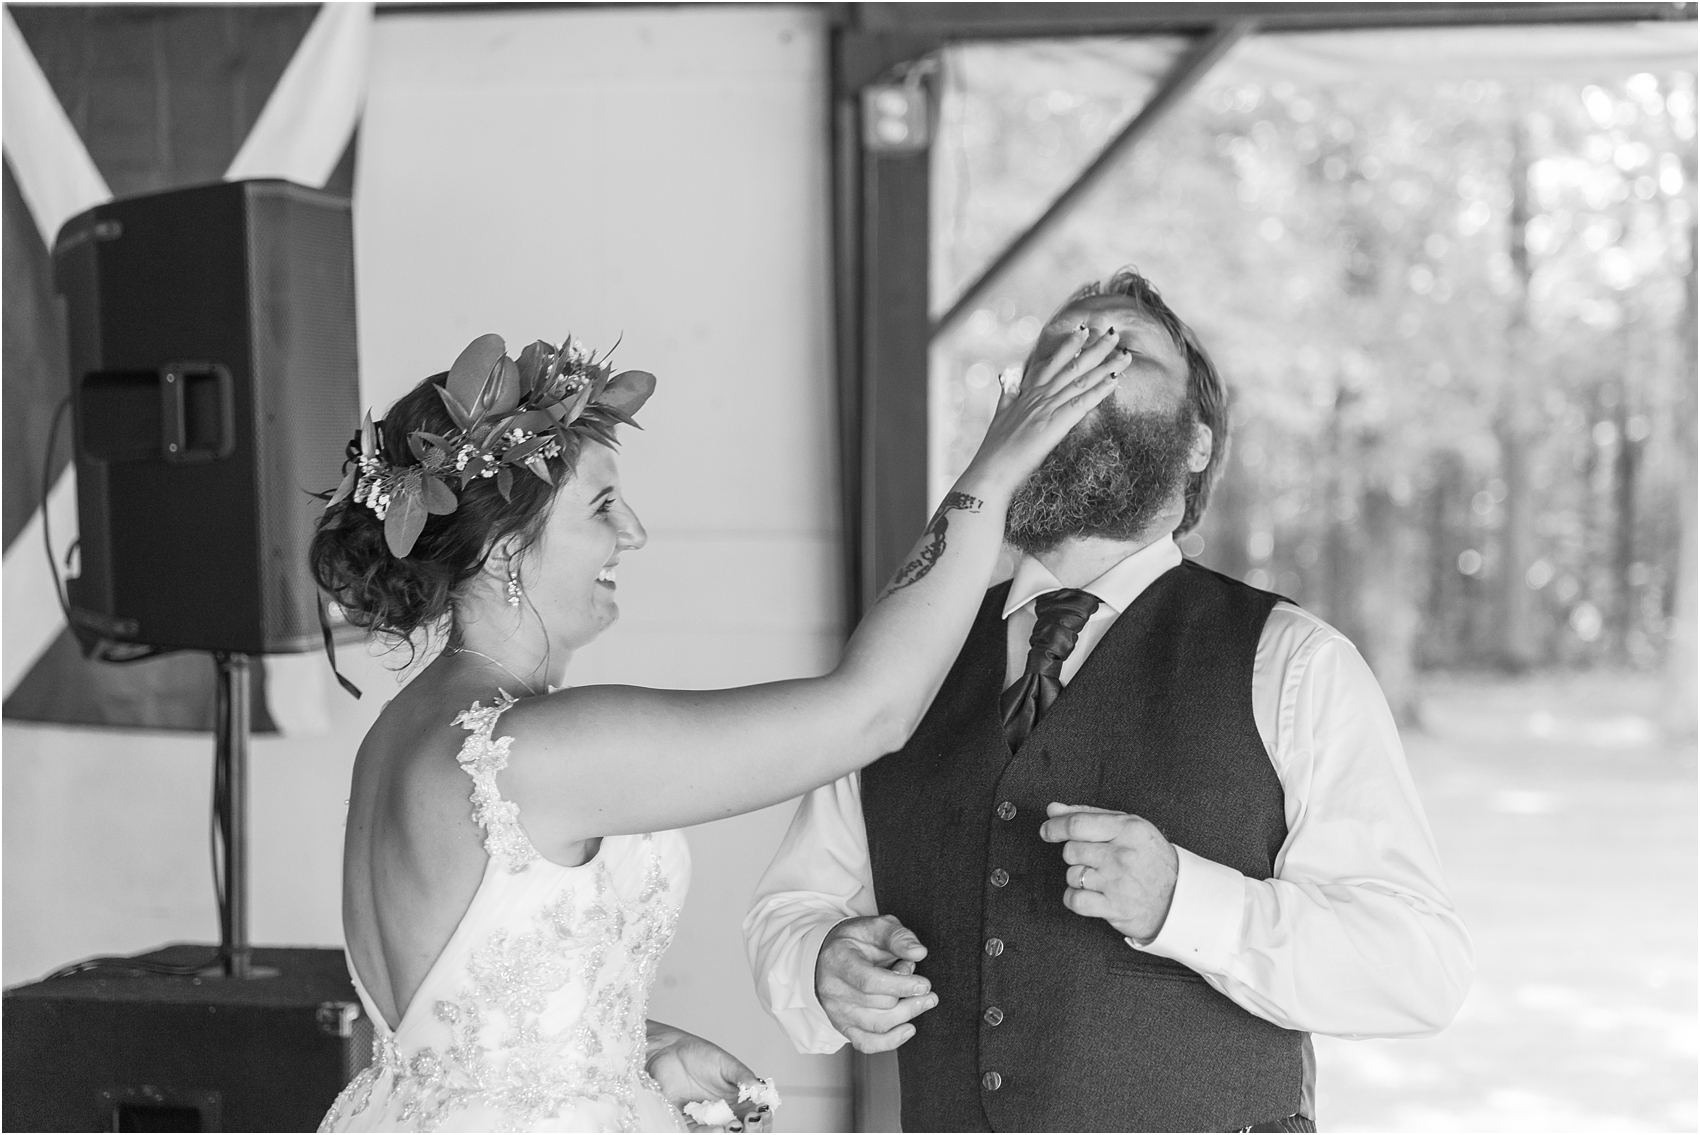 scottish-inspired-wedding-photos-in-the-country-in-port-sanilac-michigan-by-courtney-carolyn-photography_0041.jpg